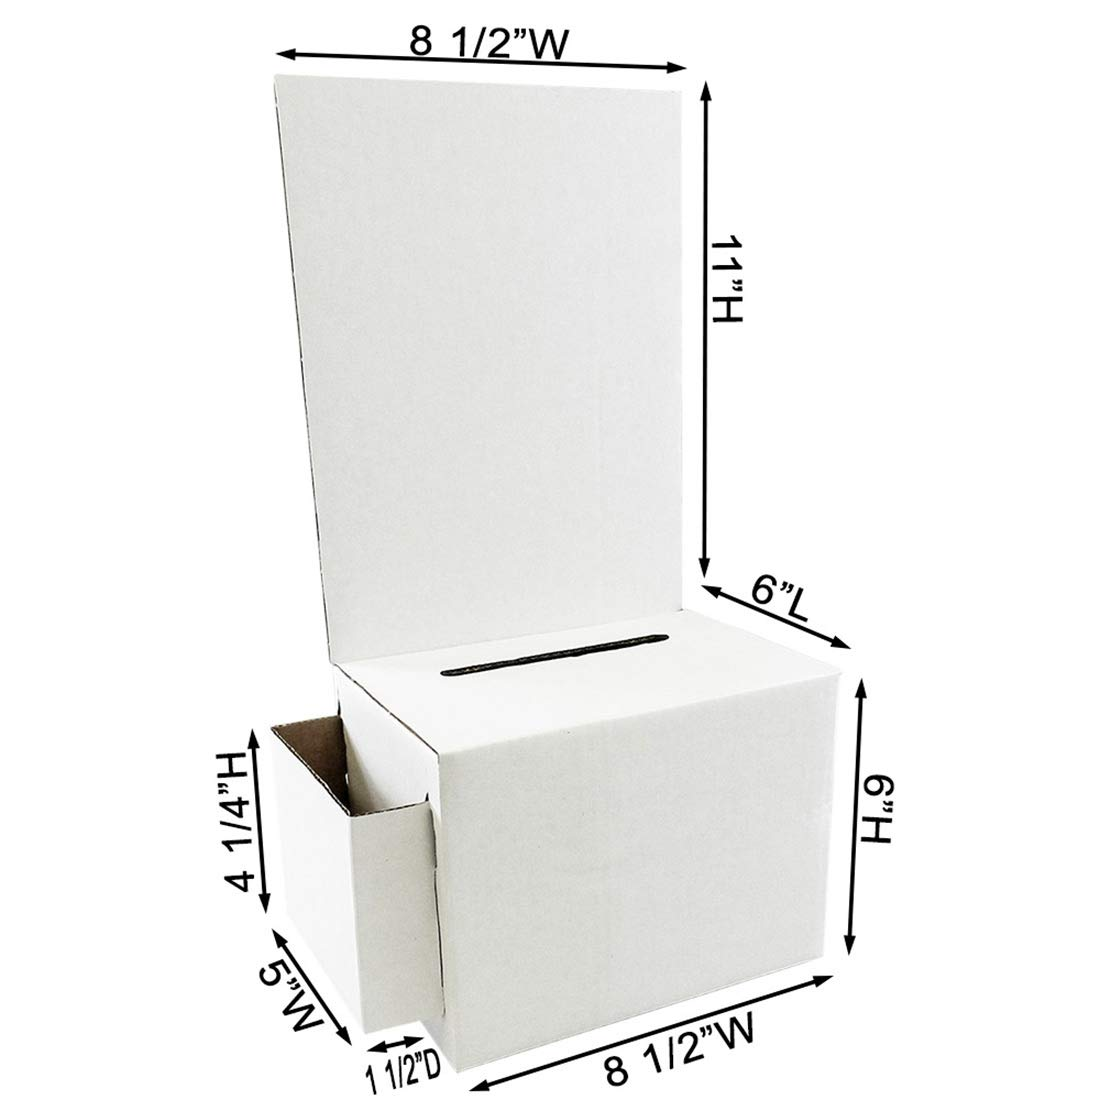 Cardboard Ballot Box with White Removable Header (Carton of 10) by Affordable Display Products